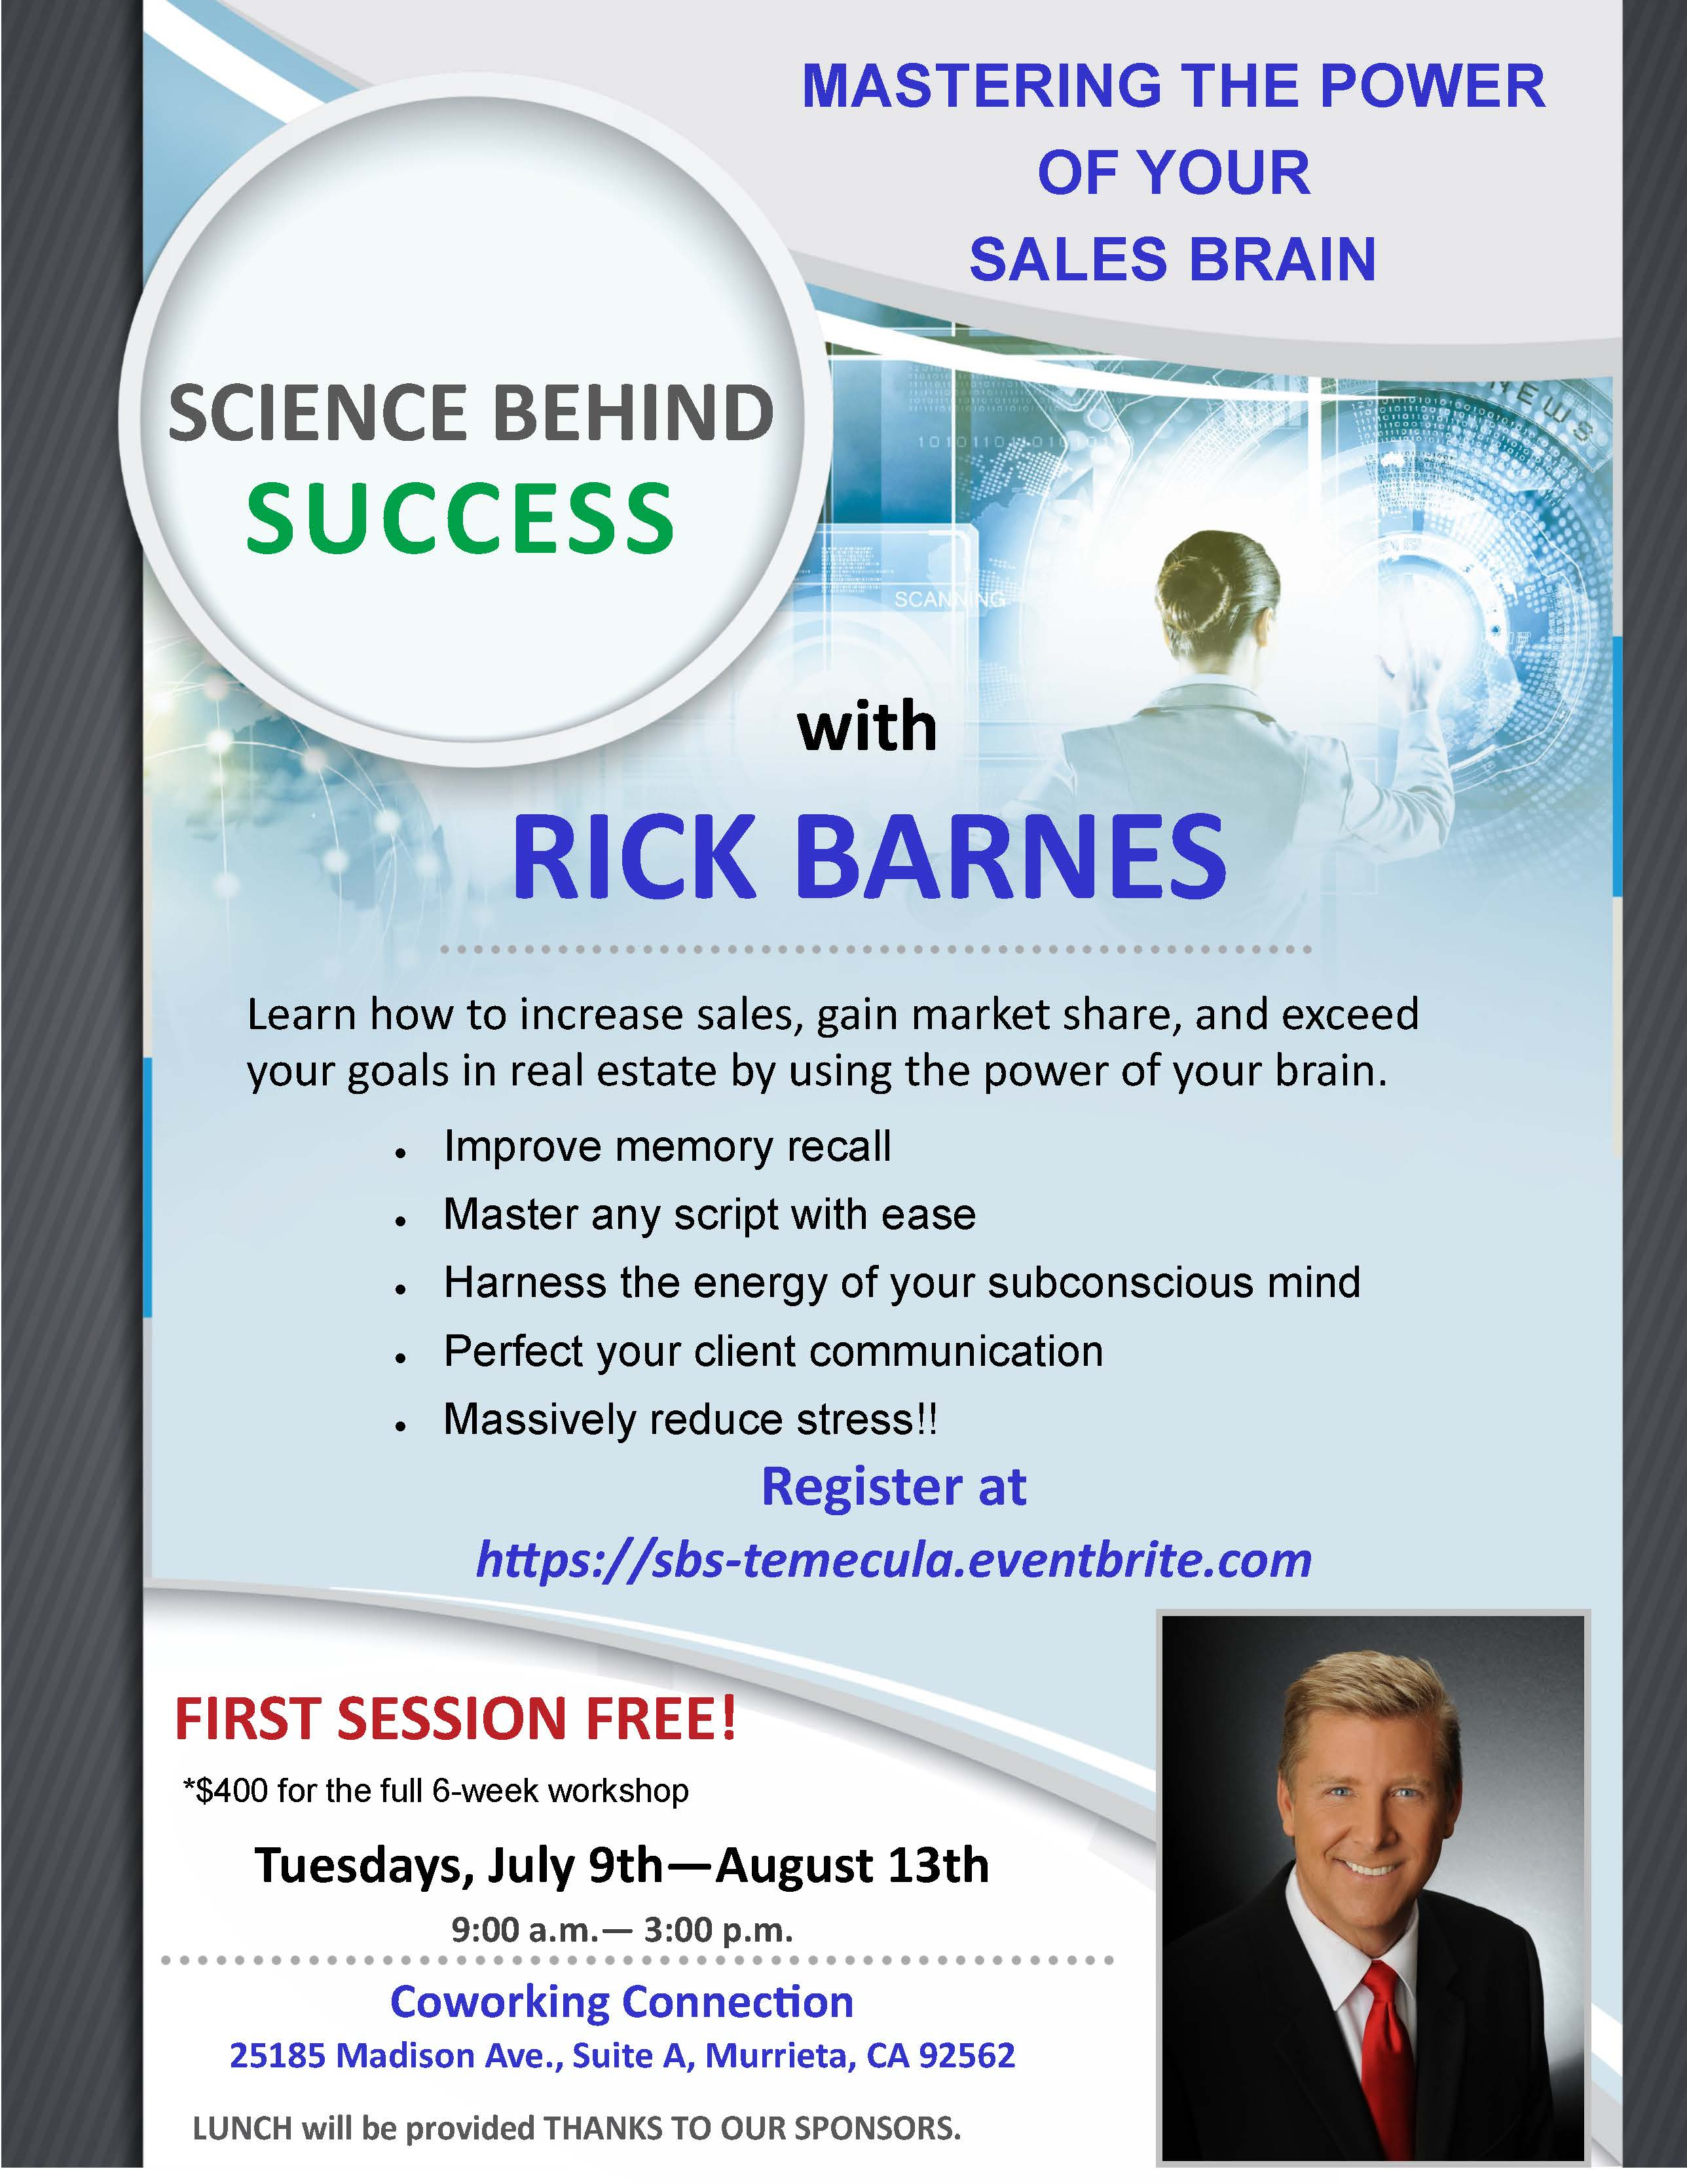 Temecula Valley Real Estate - Science Behind Success @ Coworking Connection